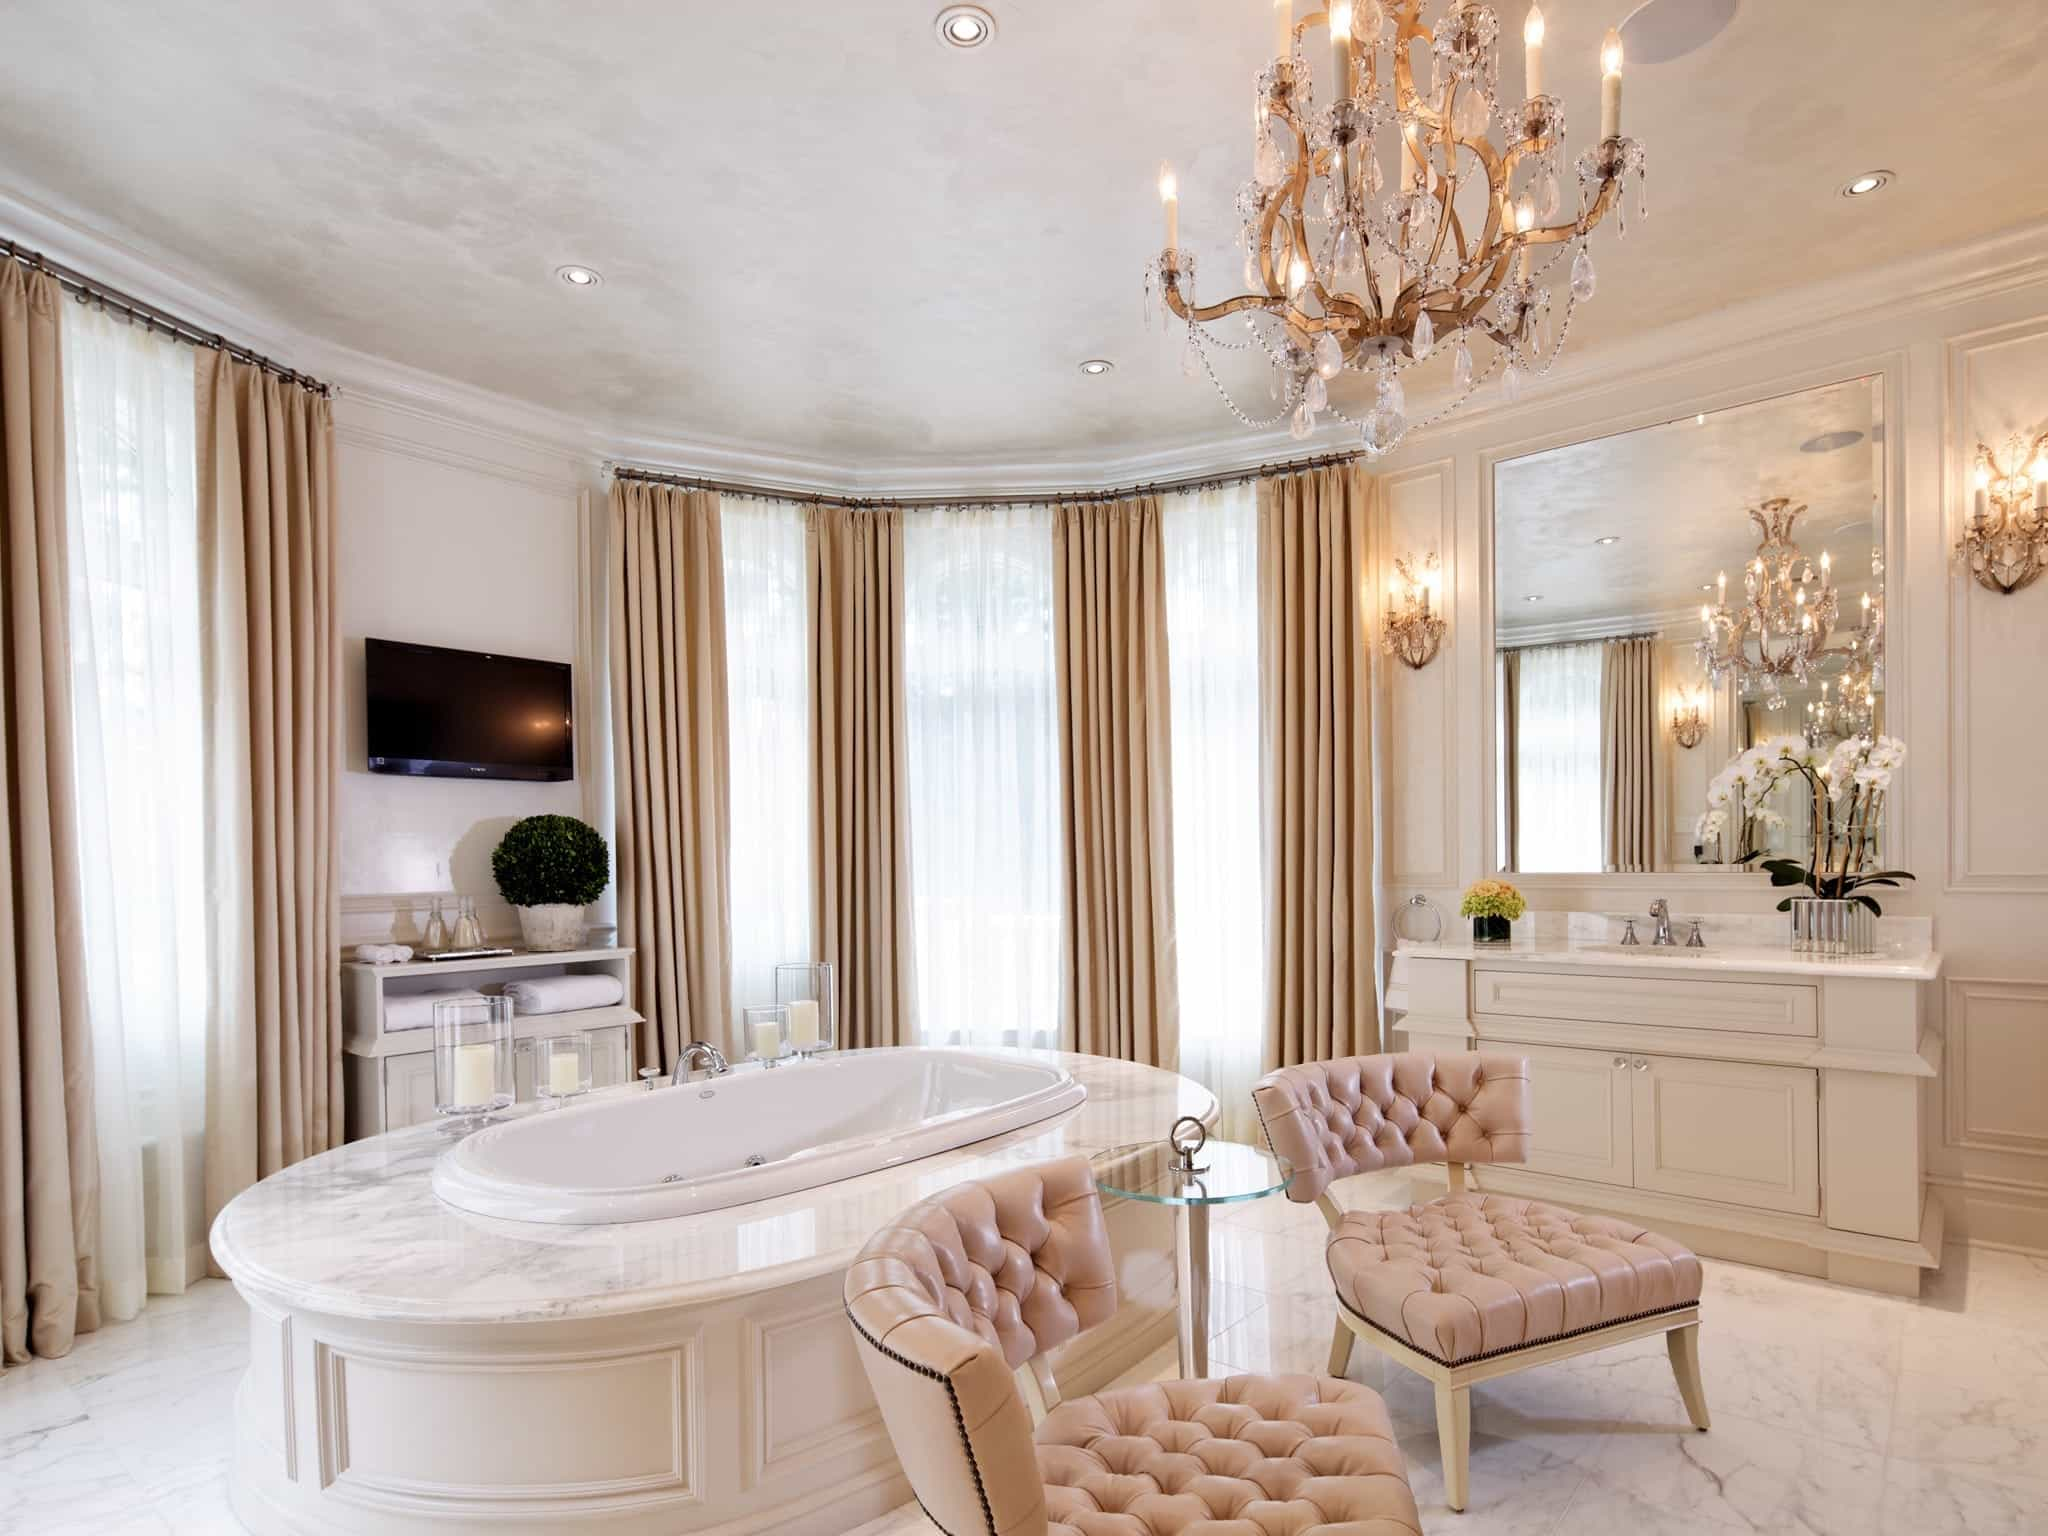 Deluxe Elegant Master Bathroom With Marble Floors (Image 3 of 13)